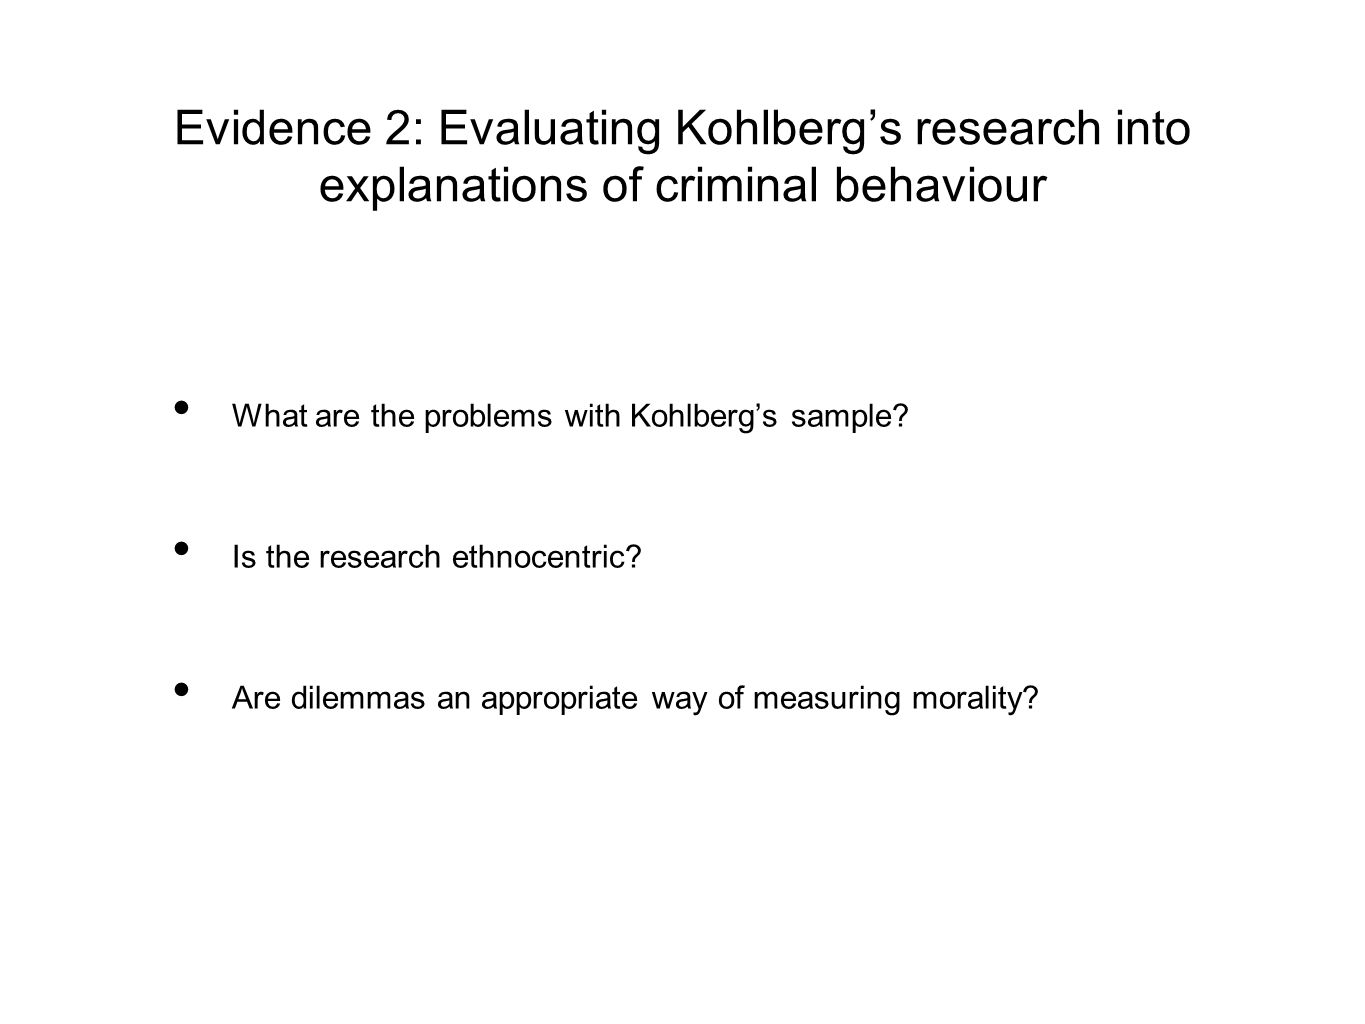 Evidence 2: Evaluating Kohlberg's research into explanations of criminal behaviour